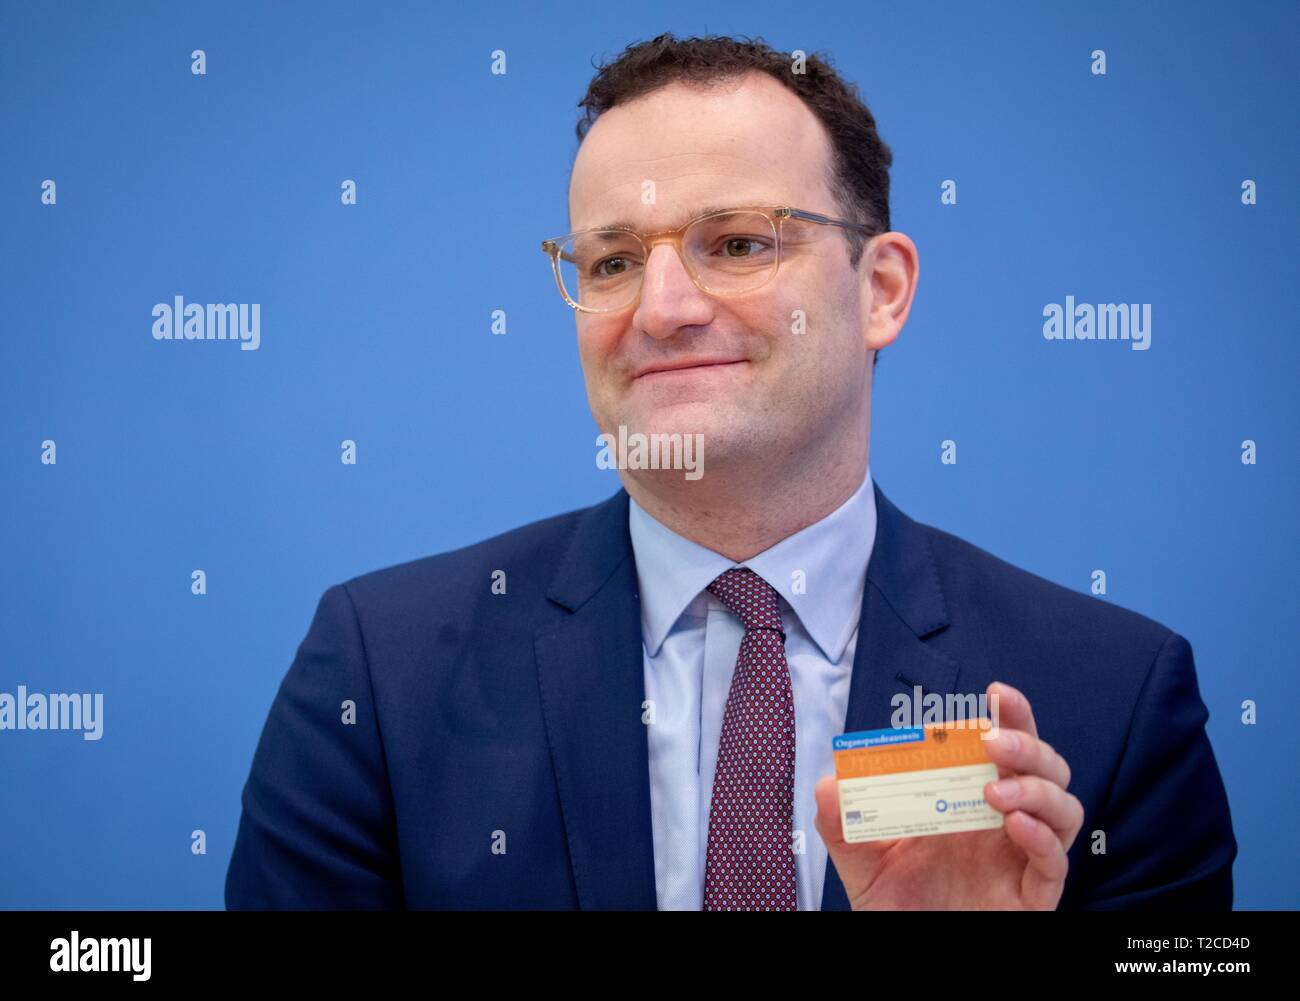 Berlin, Germany. 01st Apr, 2019. Jens Spahn (CDU), Federal Minister of Health, shows an organ donation card at the Federal Press Conference during the presentation of the new organ donation rules. MEPs propose a draft 'double opposition solution'. Accordingly, everyone is regarded as an organ donor, but one should be able to say no to this, otherwise relatives are to be asked - as a double barrier. In the Bundestag there are also initiatives for other new regulations. Credit: Kay Nietfeld/dpa/Alamy Live News - Stock Image